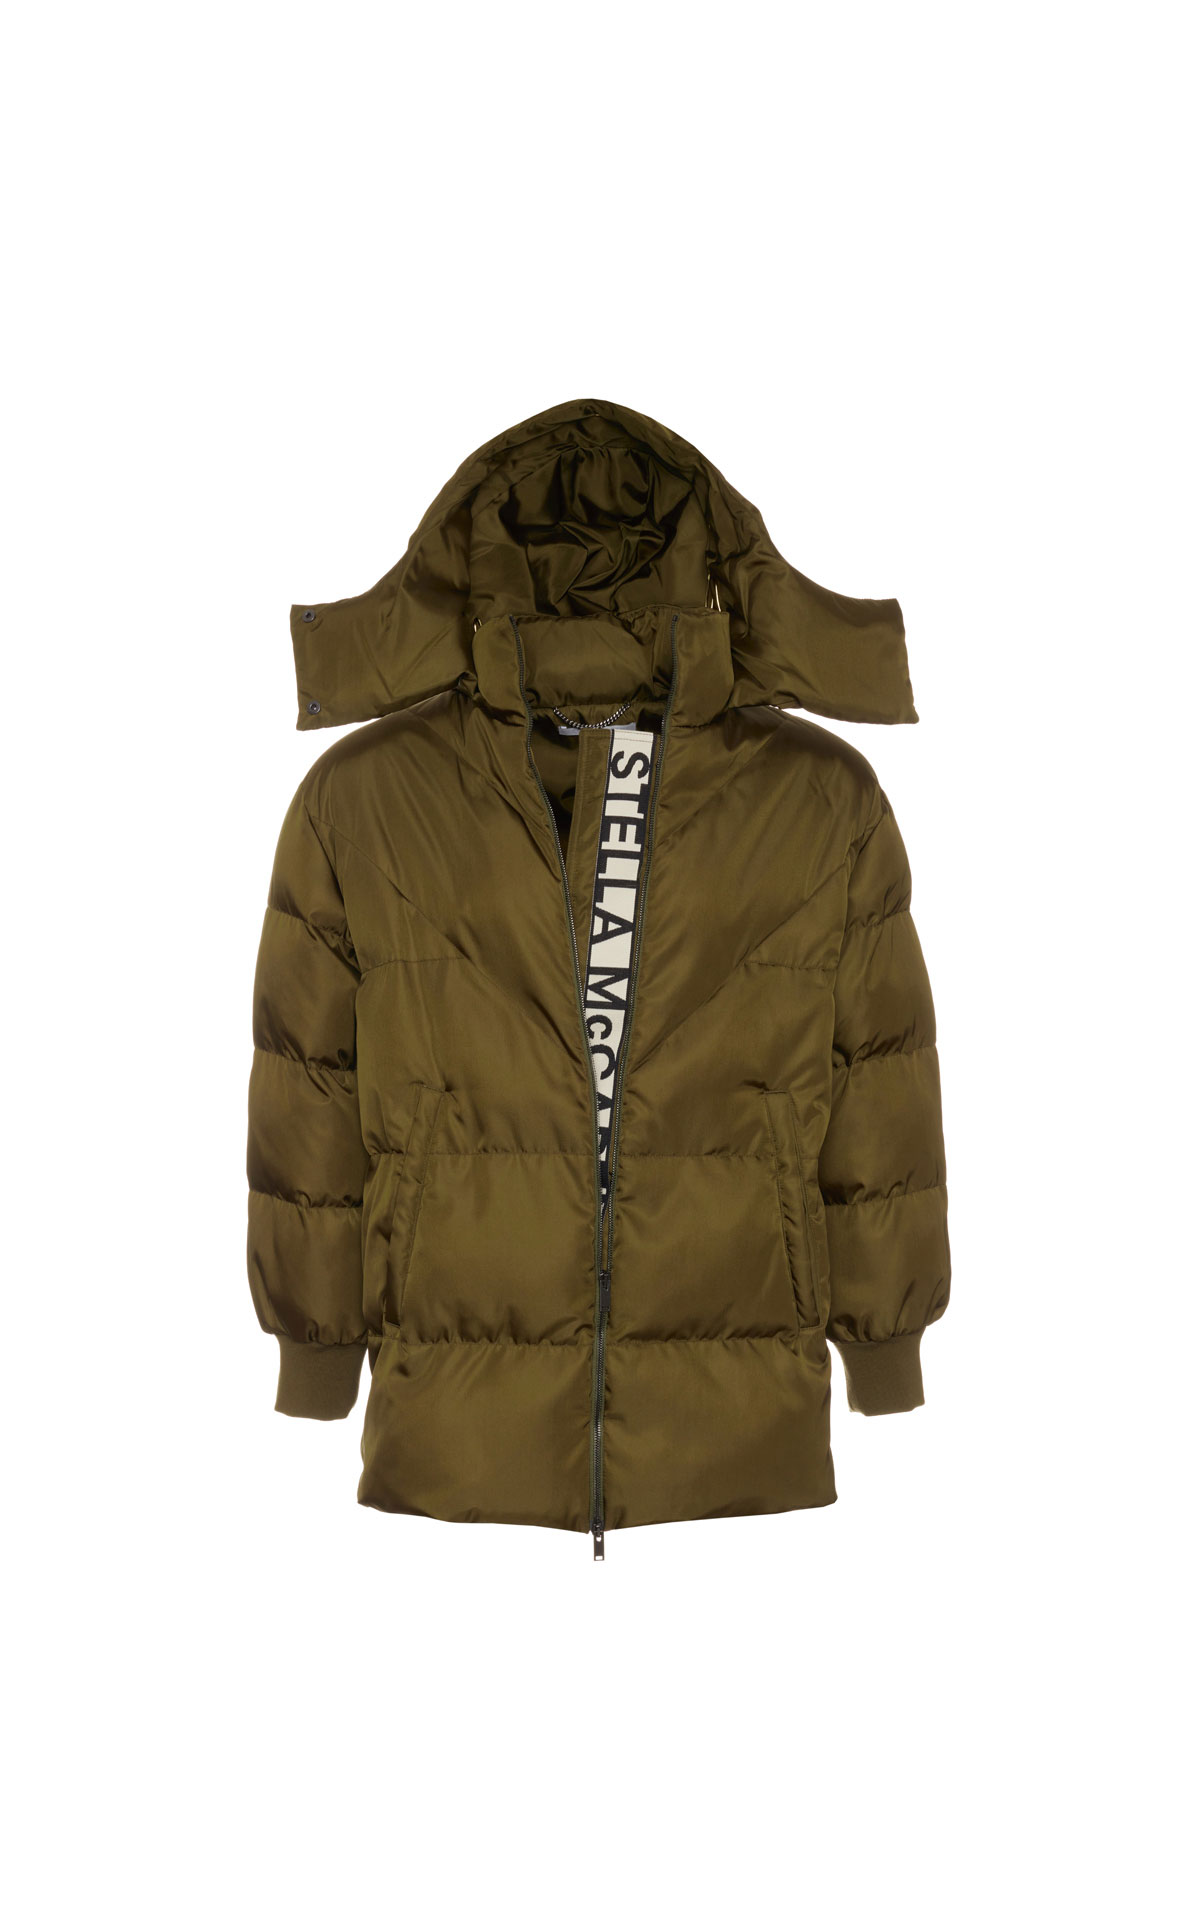 Stella McCartney Ribbon logo women's puffer jacket from Bicester Village